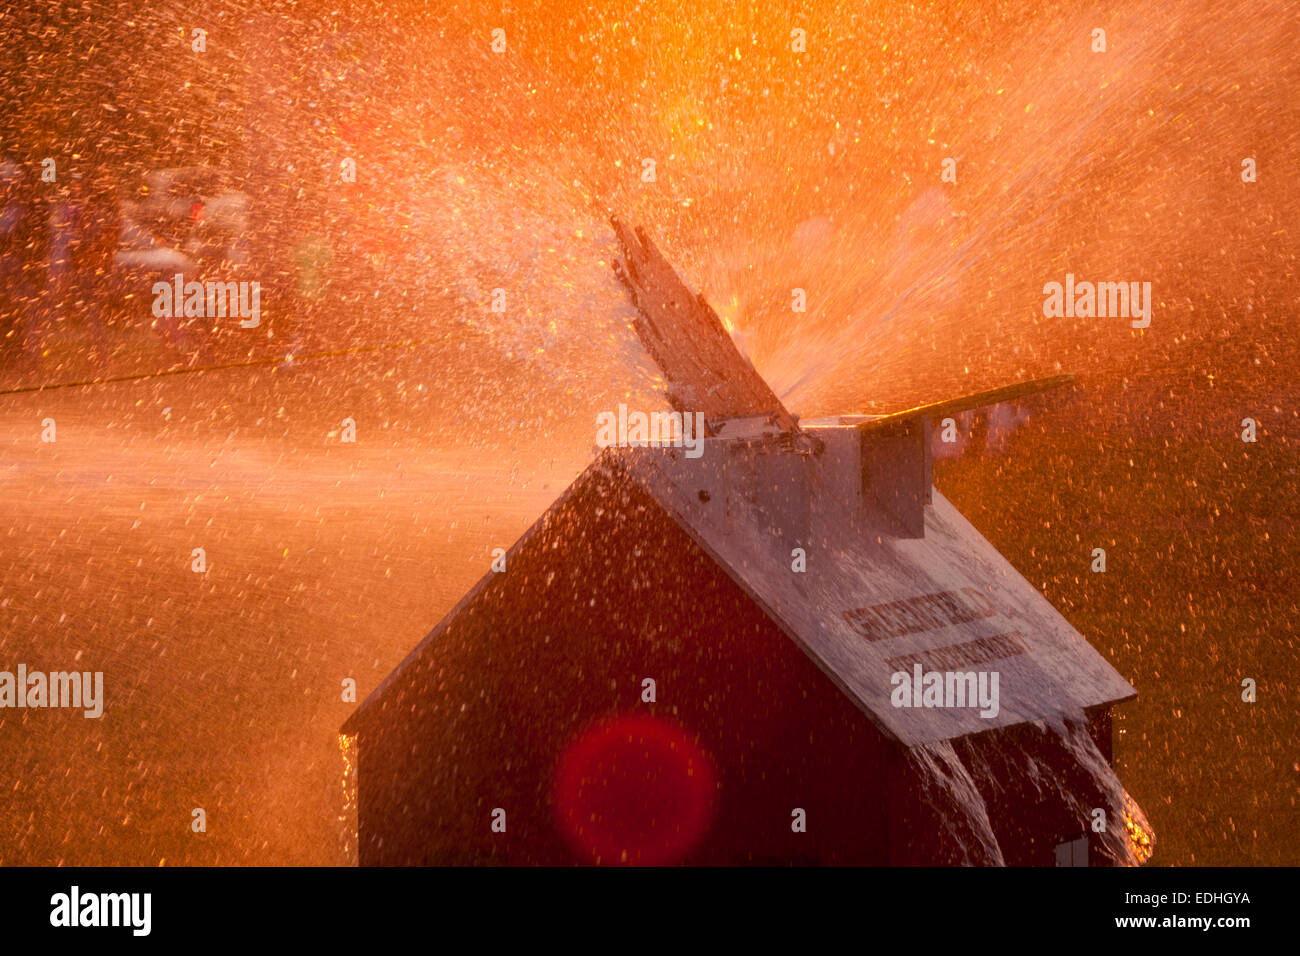 Water spray over a house fire demonstration with wooden flame for children to extinguish - Stock Image